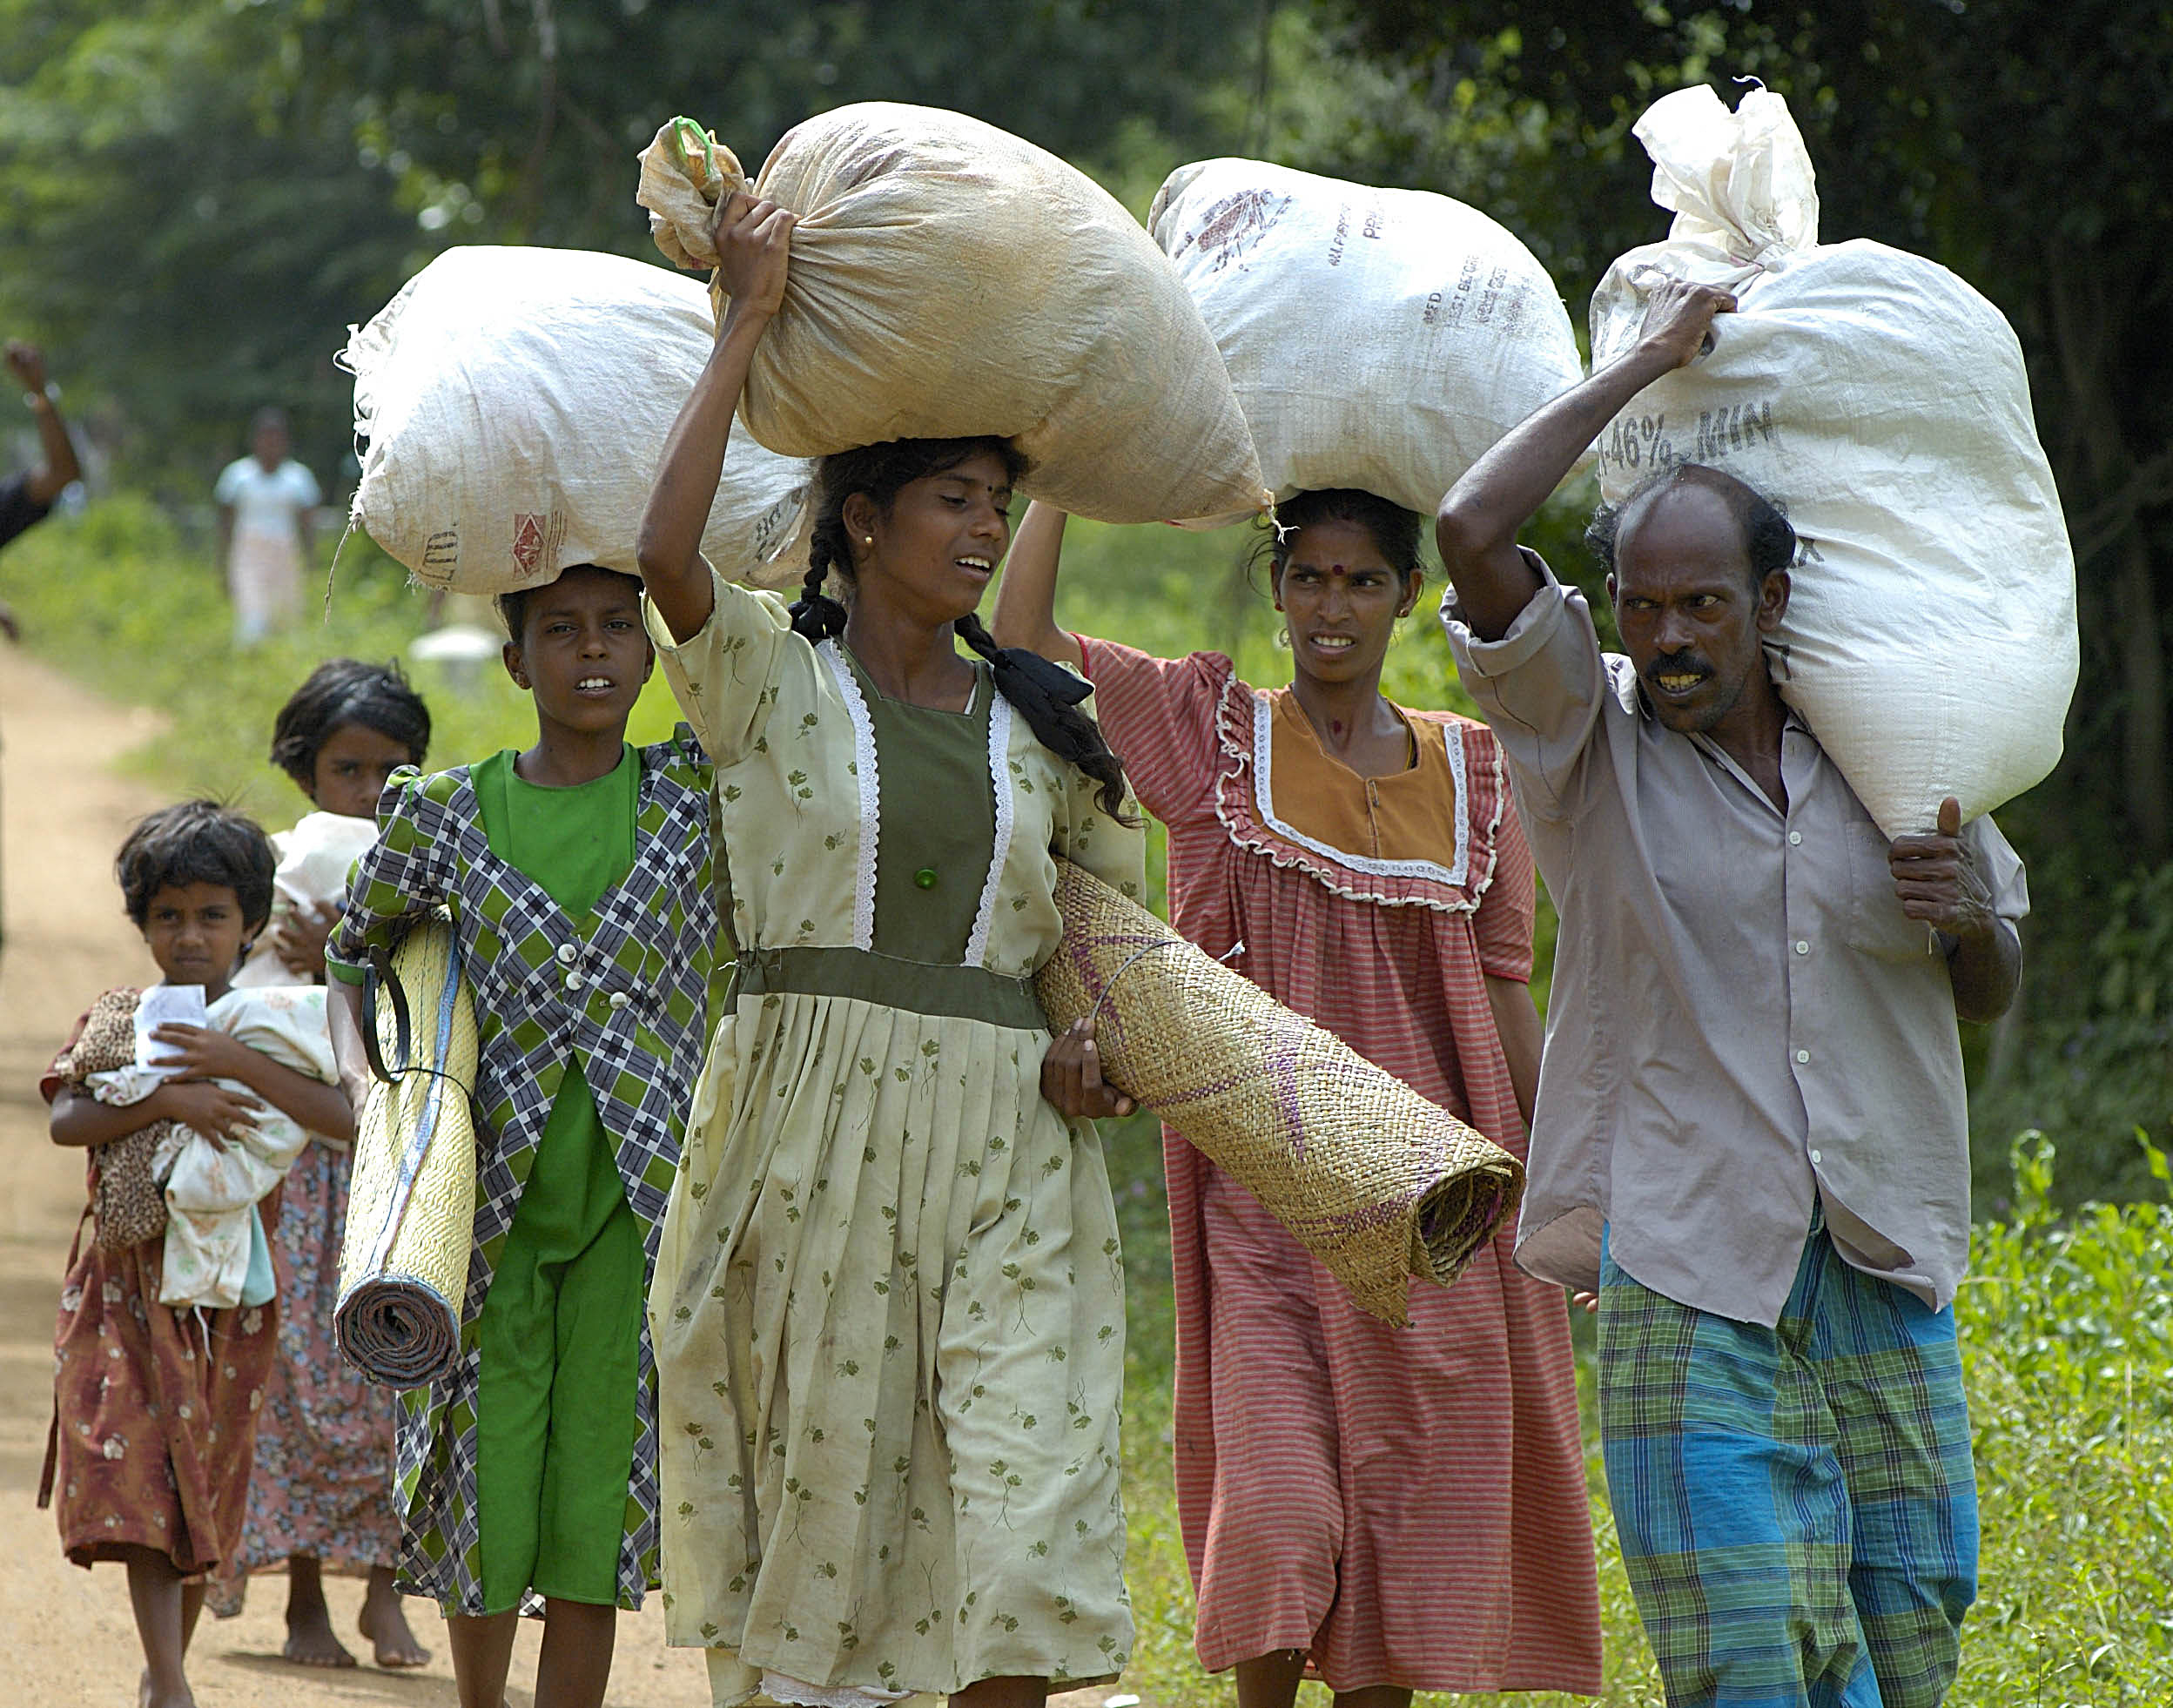 Sri Lankan refugees return home to rebuild their lives. Photo by Paul Jeffrey, ACT International.